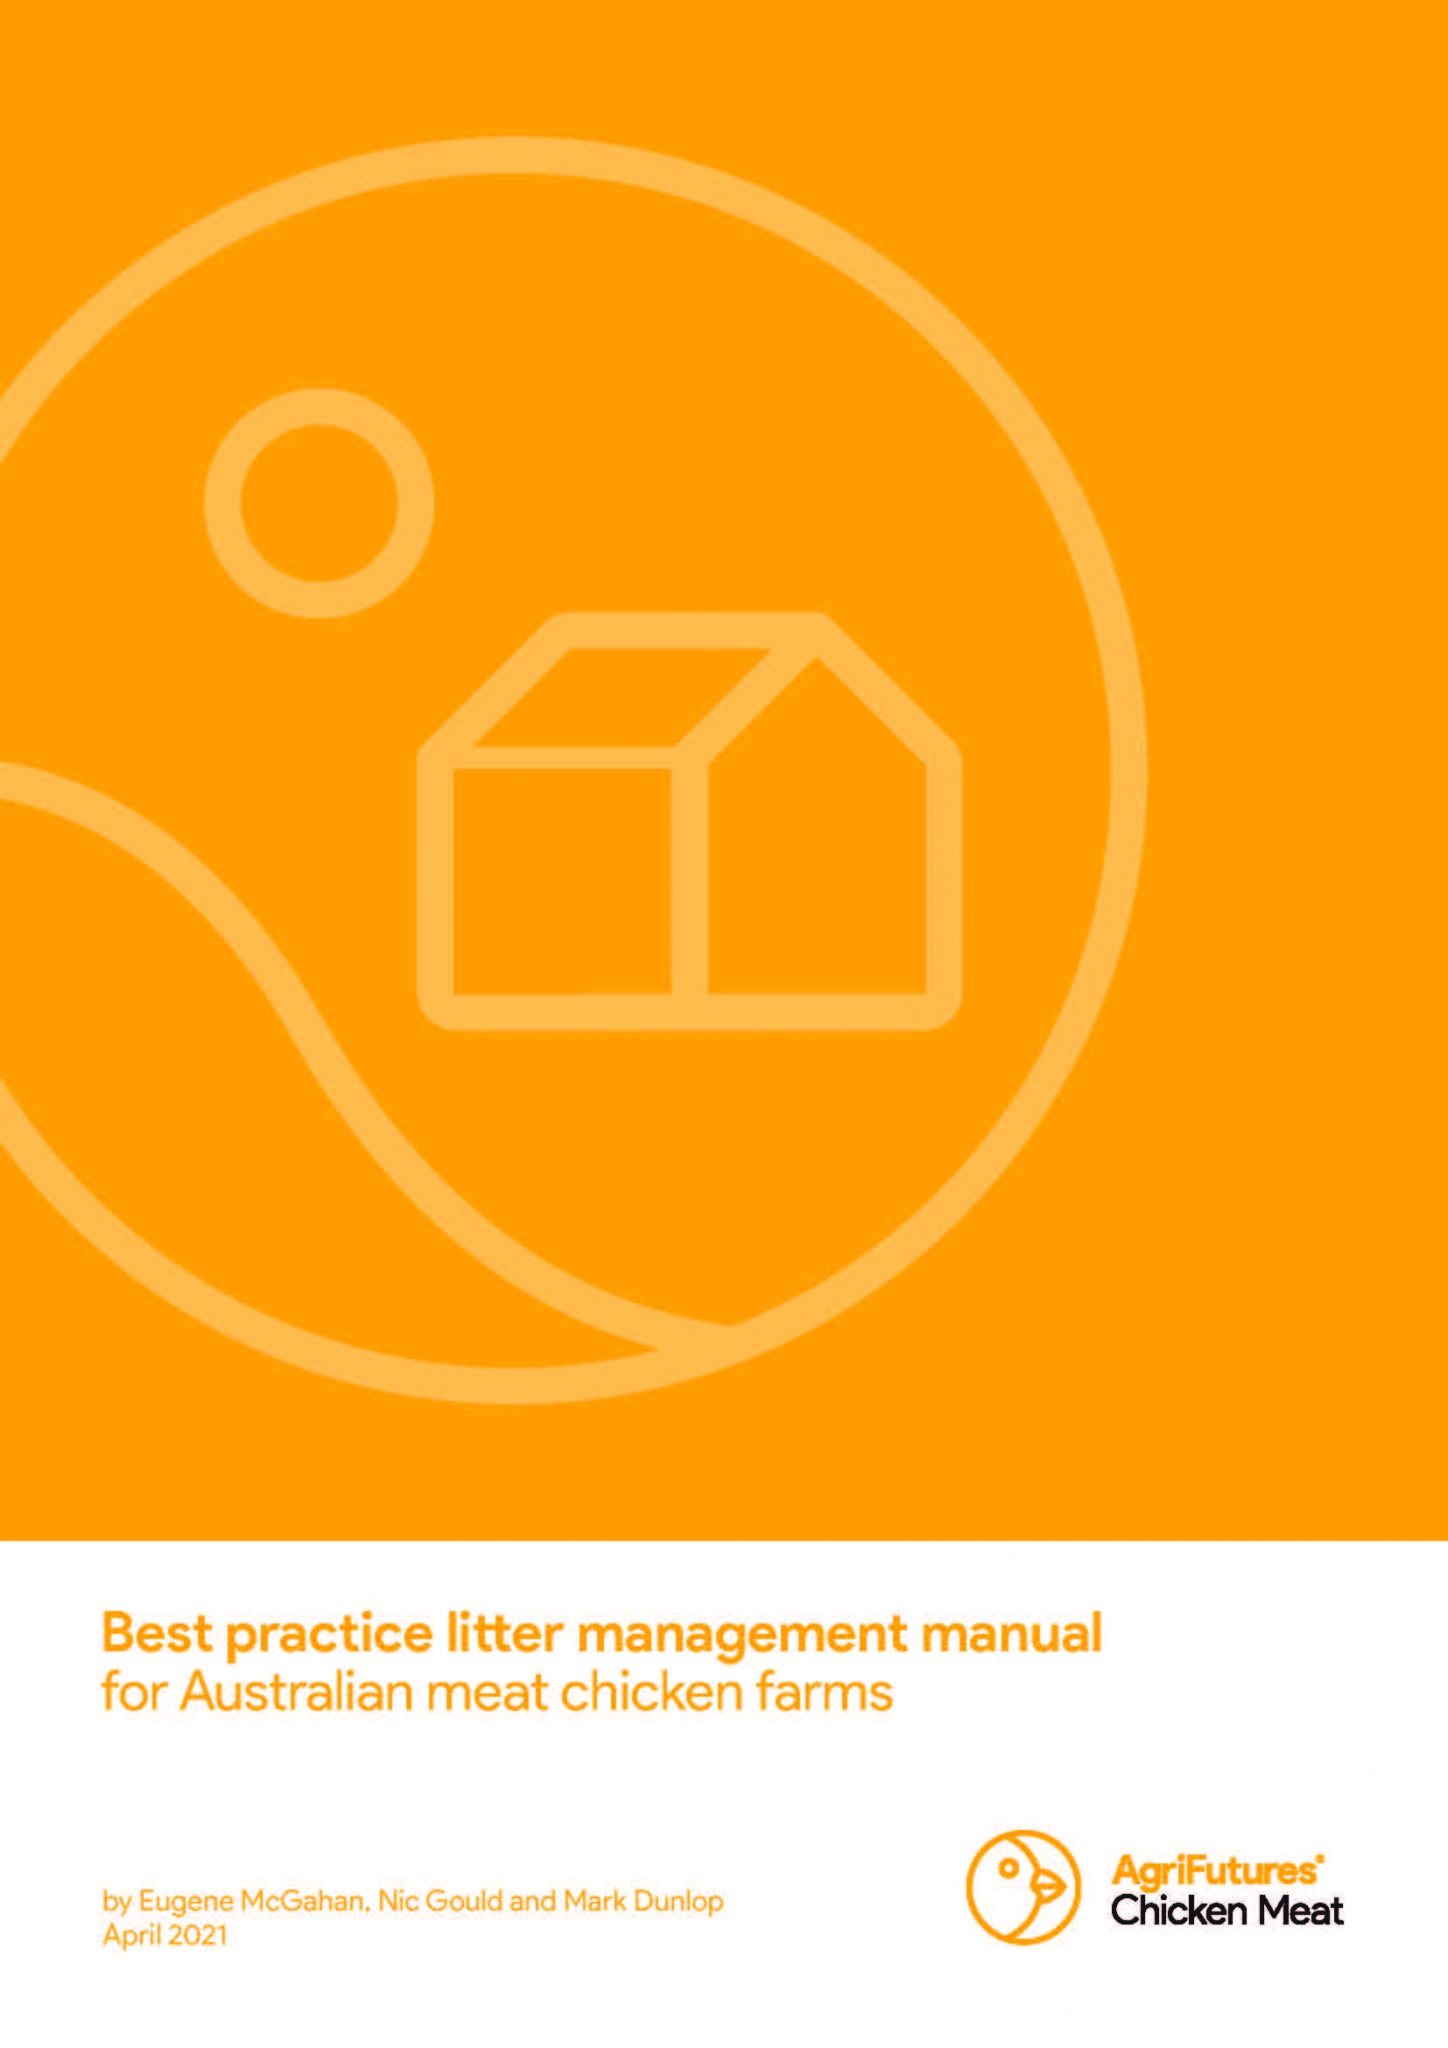 Final report: Best practice litter management manual for Australian meat chicken farms - image